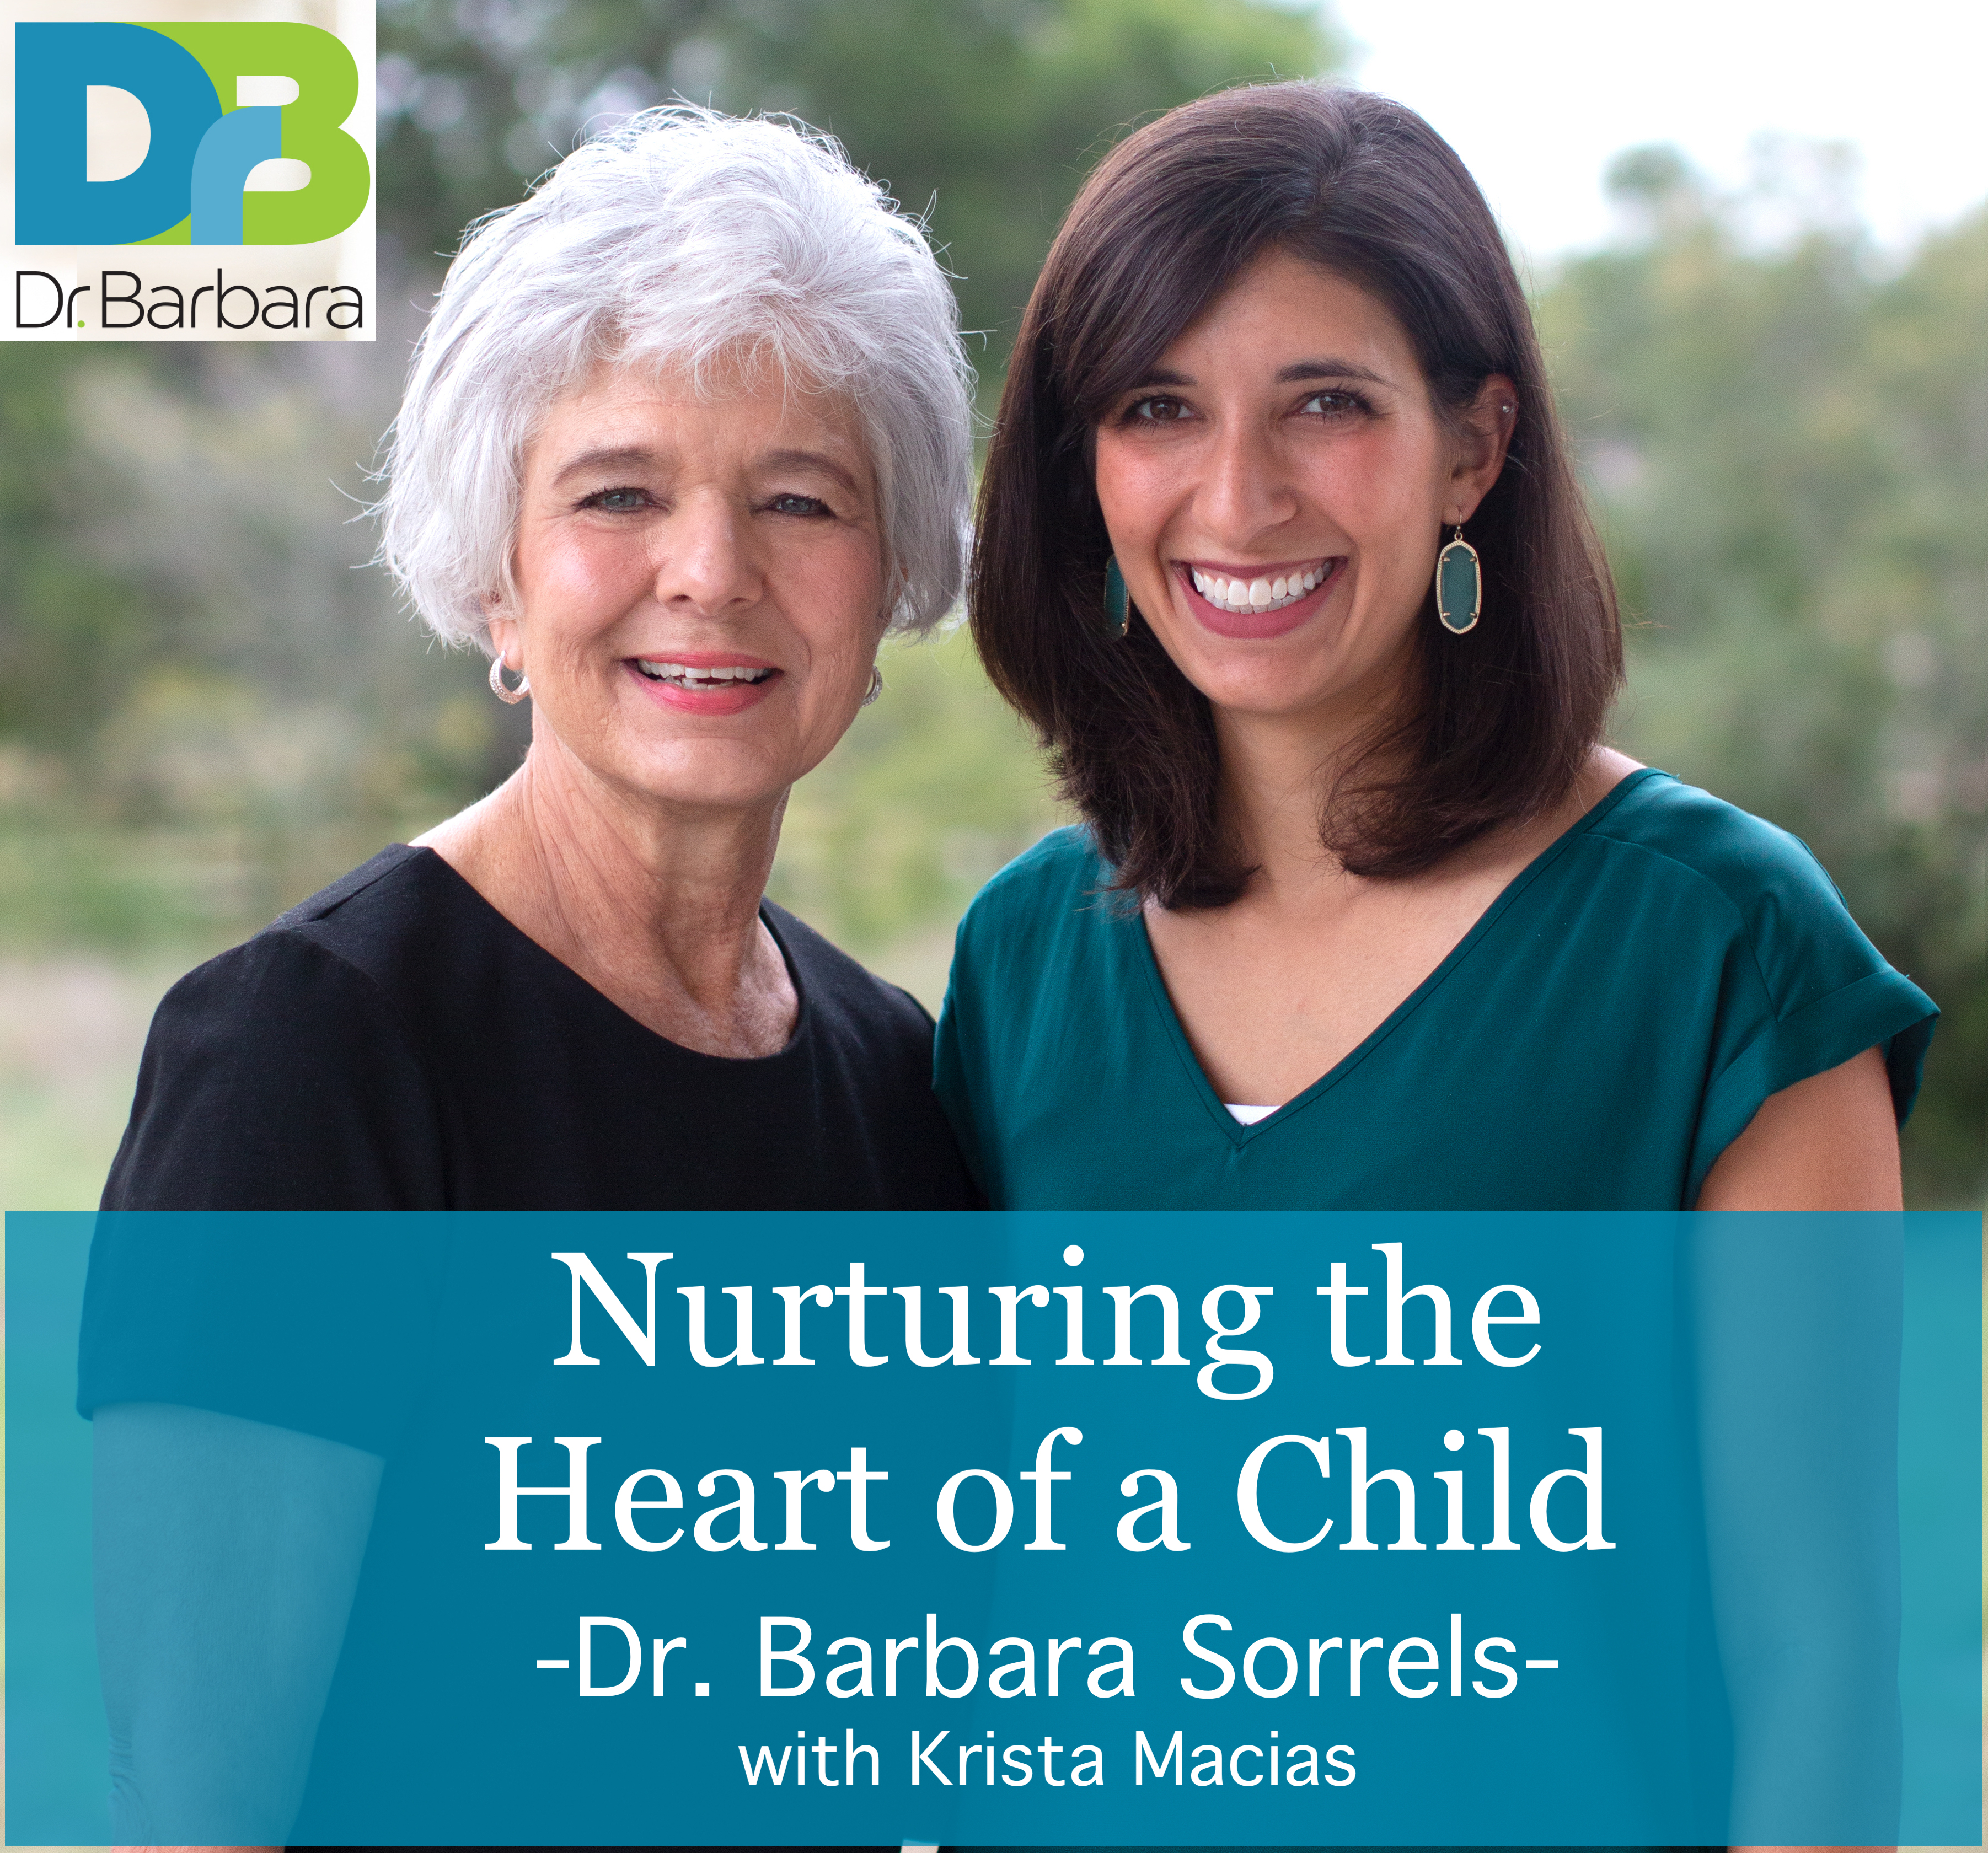 Nurturing the Heart of a Child show image